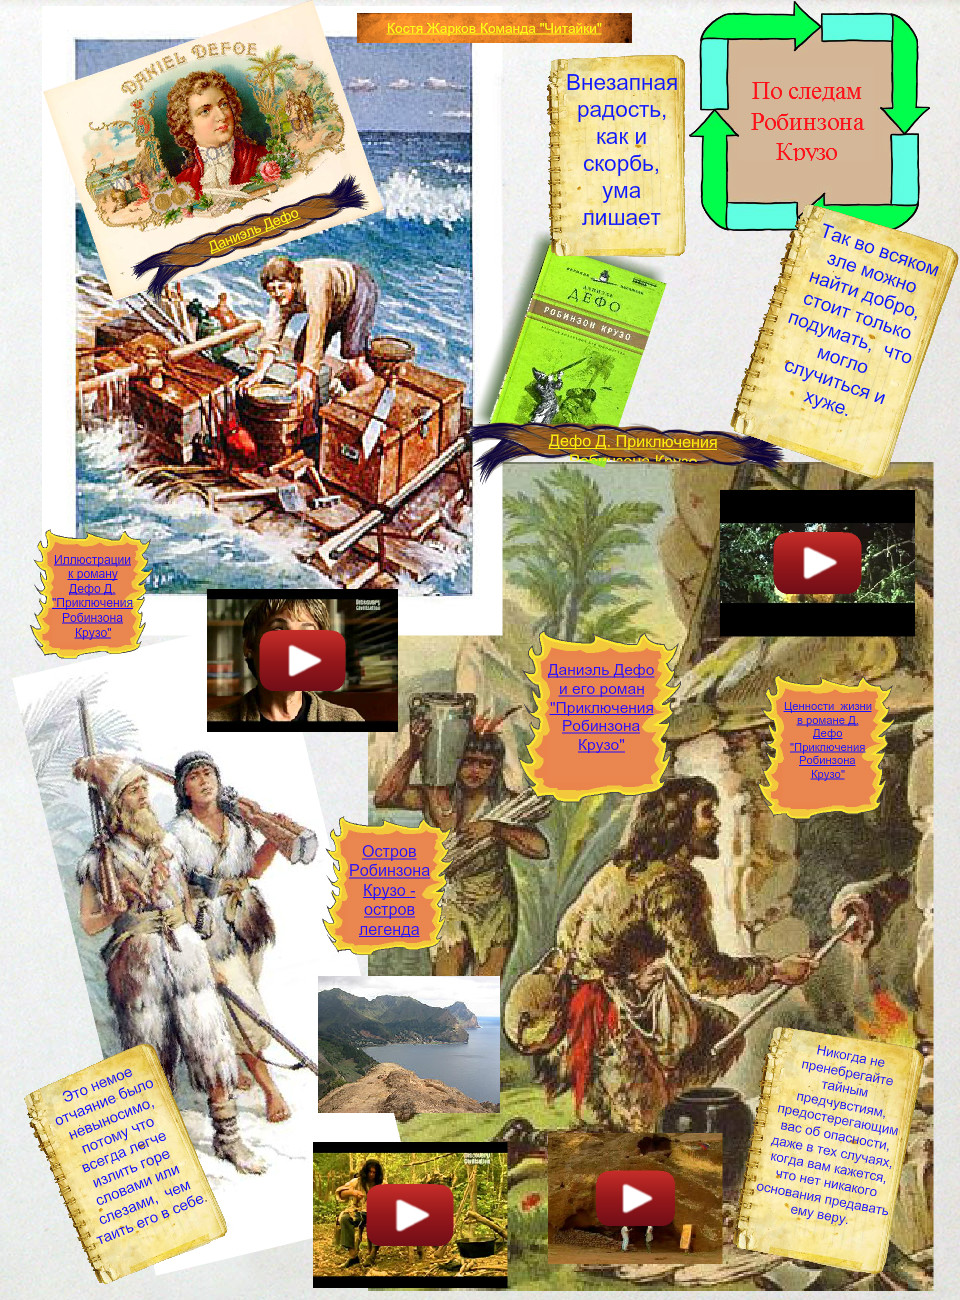 In the footsteps of Robinson Crusoe